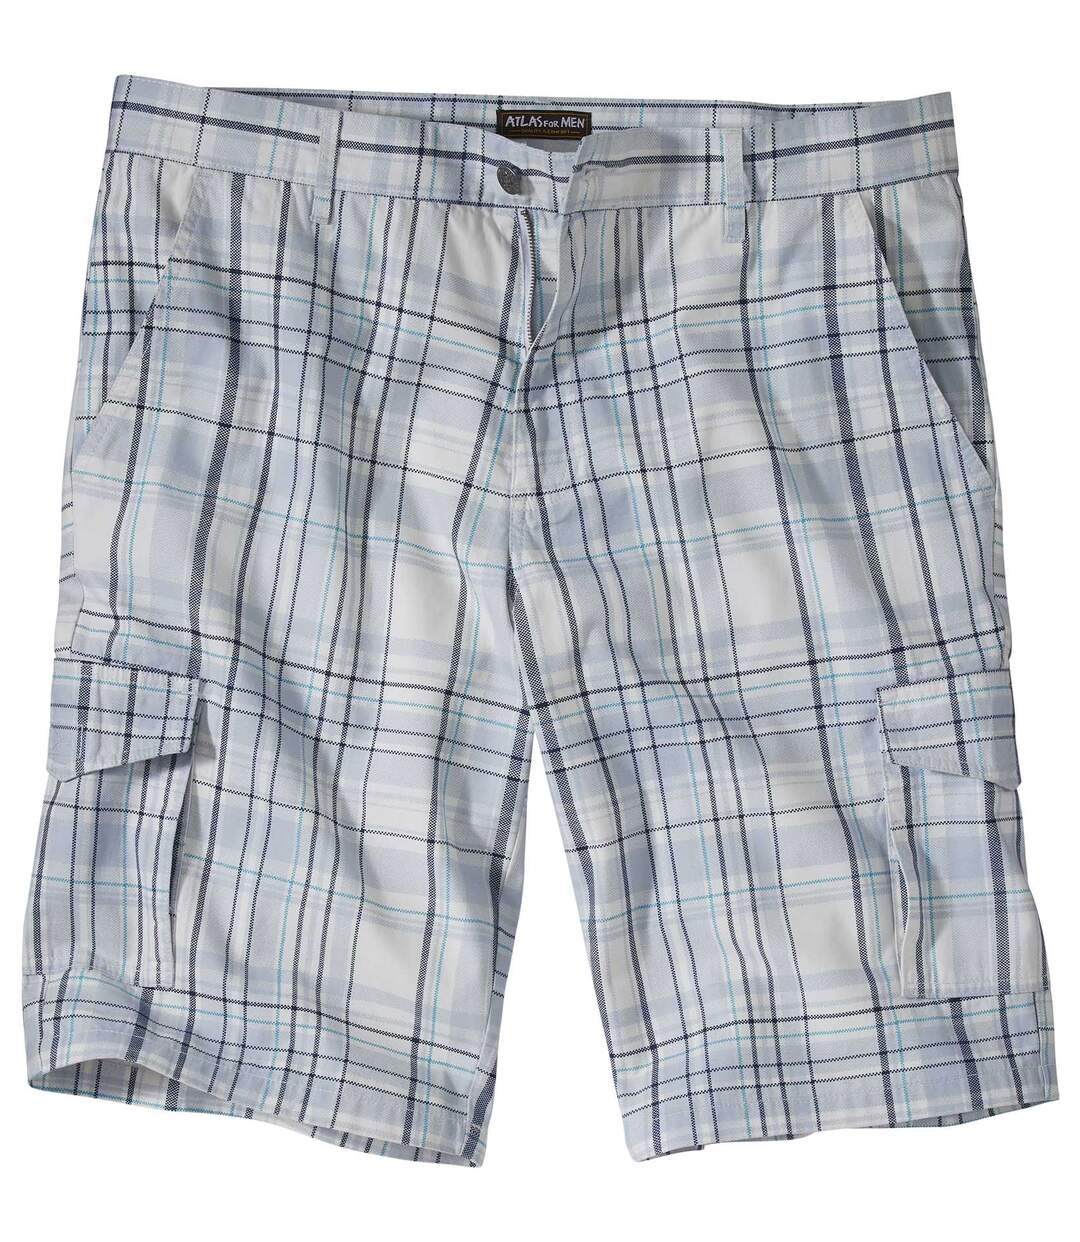 Men's Grey & Blue Checked Cargo Shorts